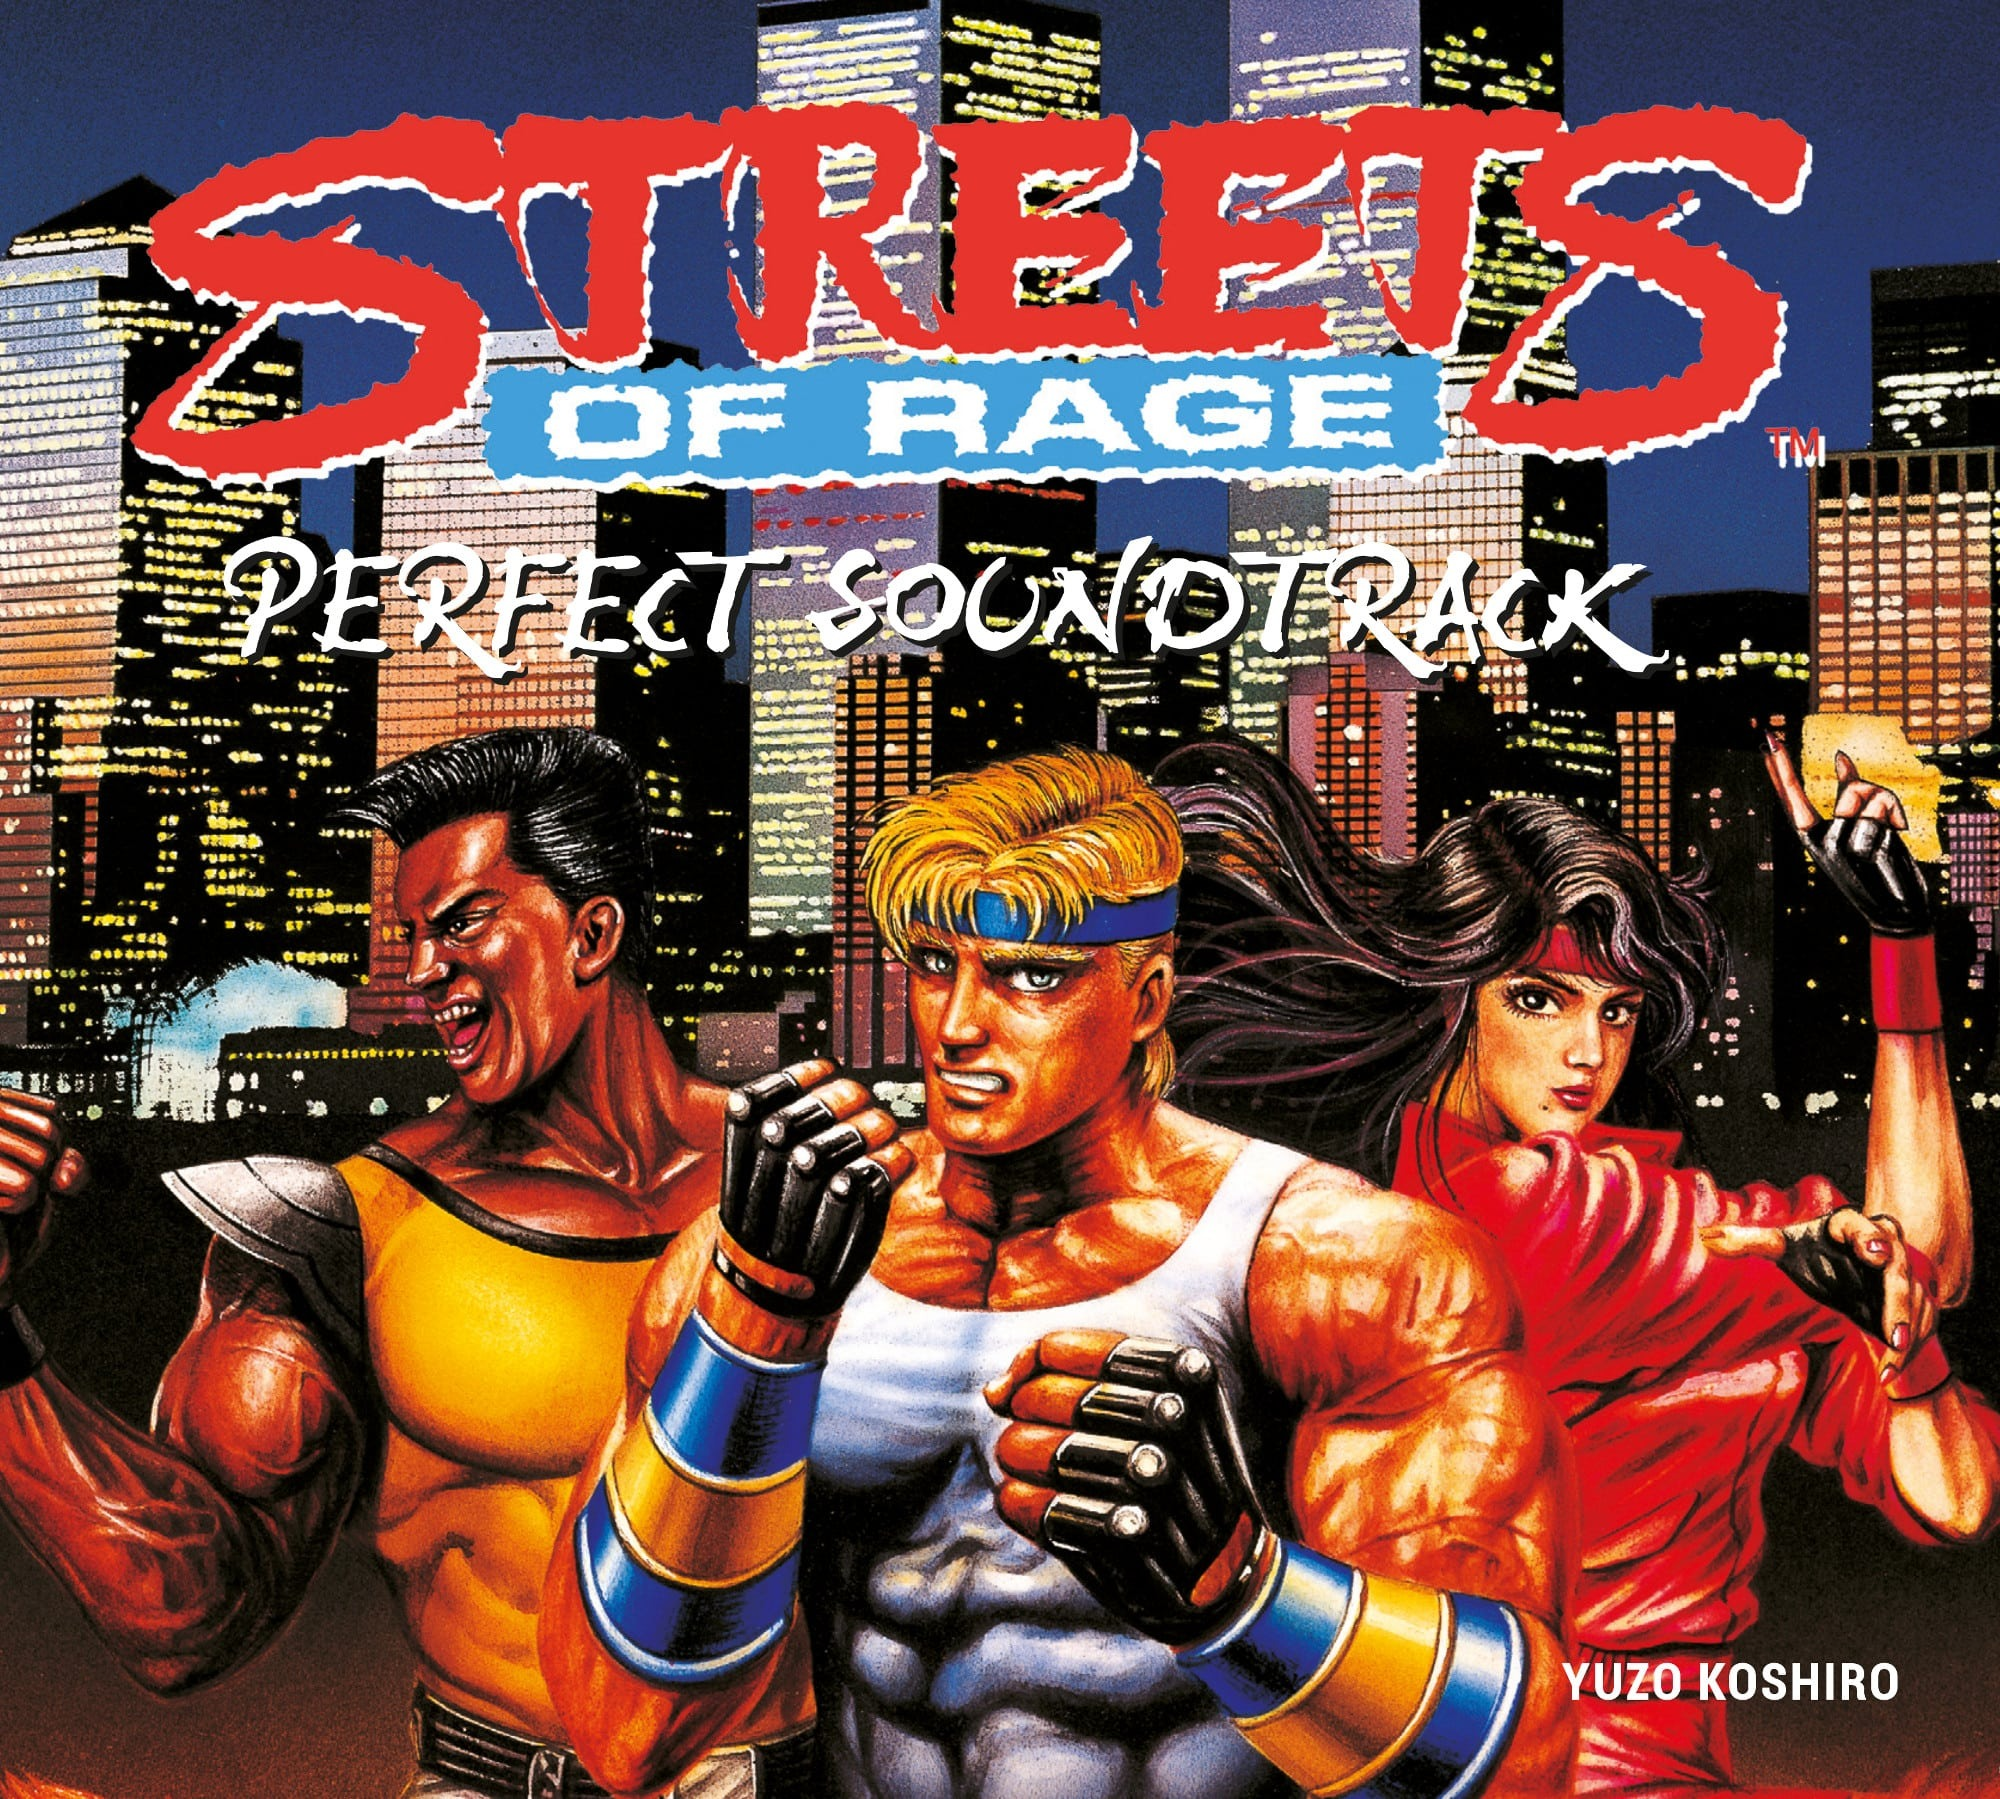 Picture Perfect Streets Of Rage Perfect Soundtrack Yuzo Koshiro